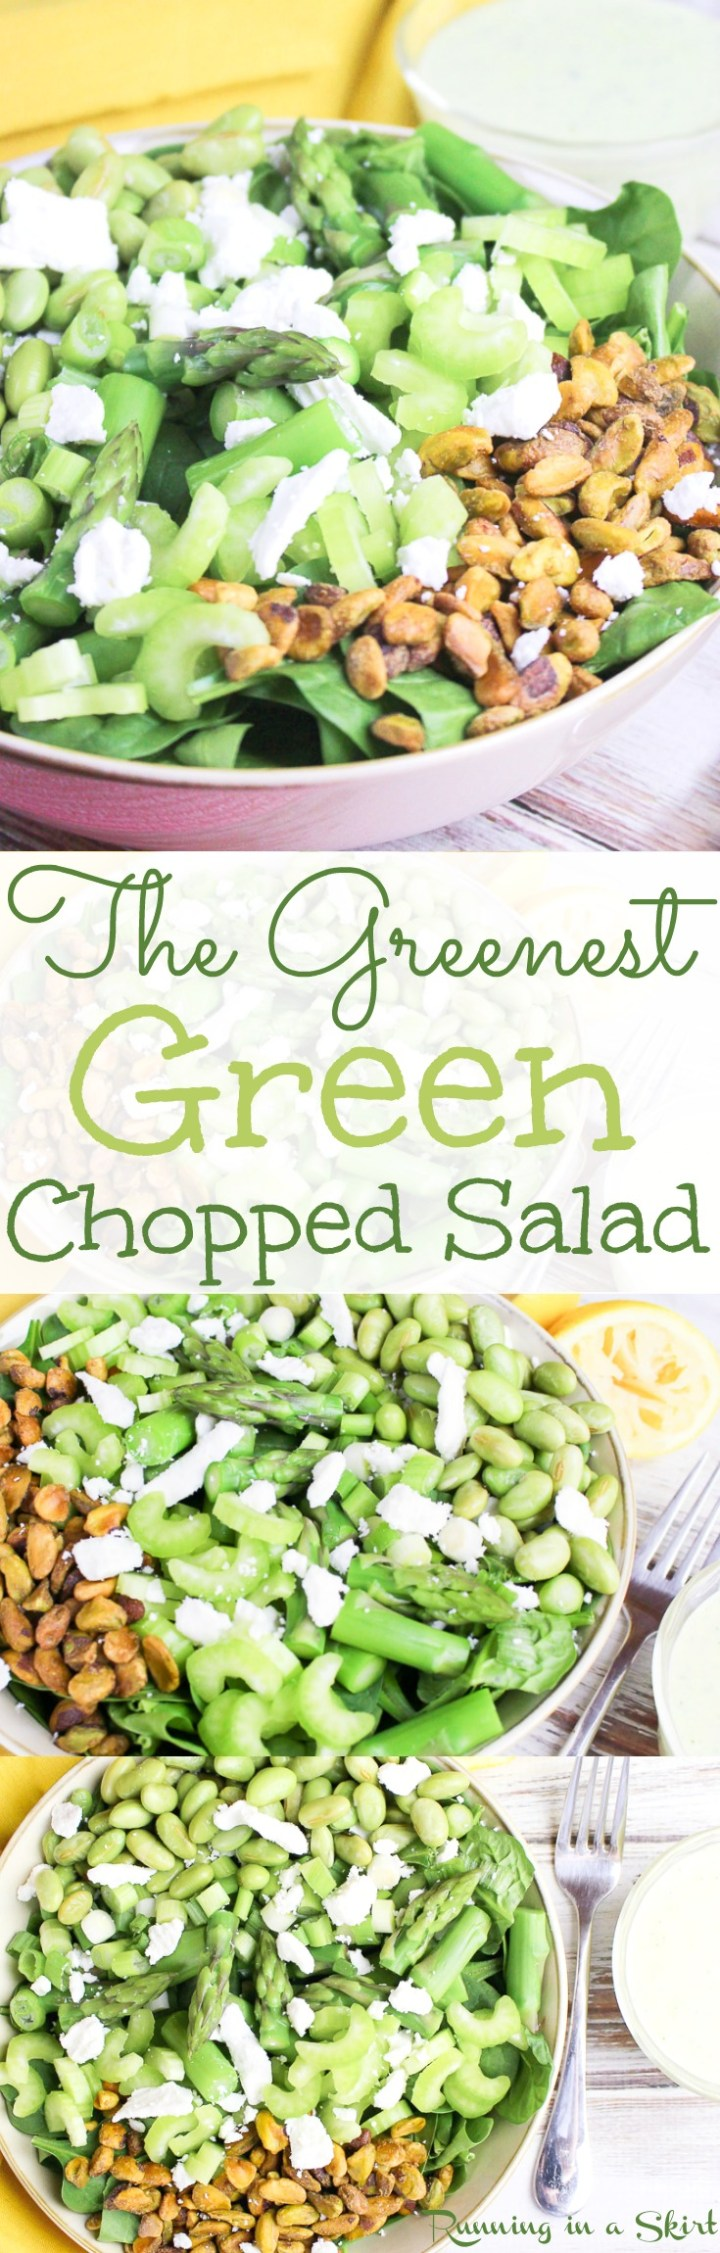 The Greenest Green Chopped Salad recipe with homemade Green Goddess Dressing. An easy & healthy green chopped salad with a basic dressing. Topped with feta but can be vegan friendly and gluten free. / Running in a Skirt via @juliewunder